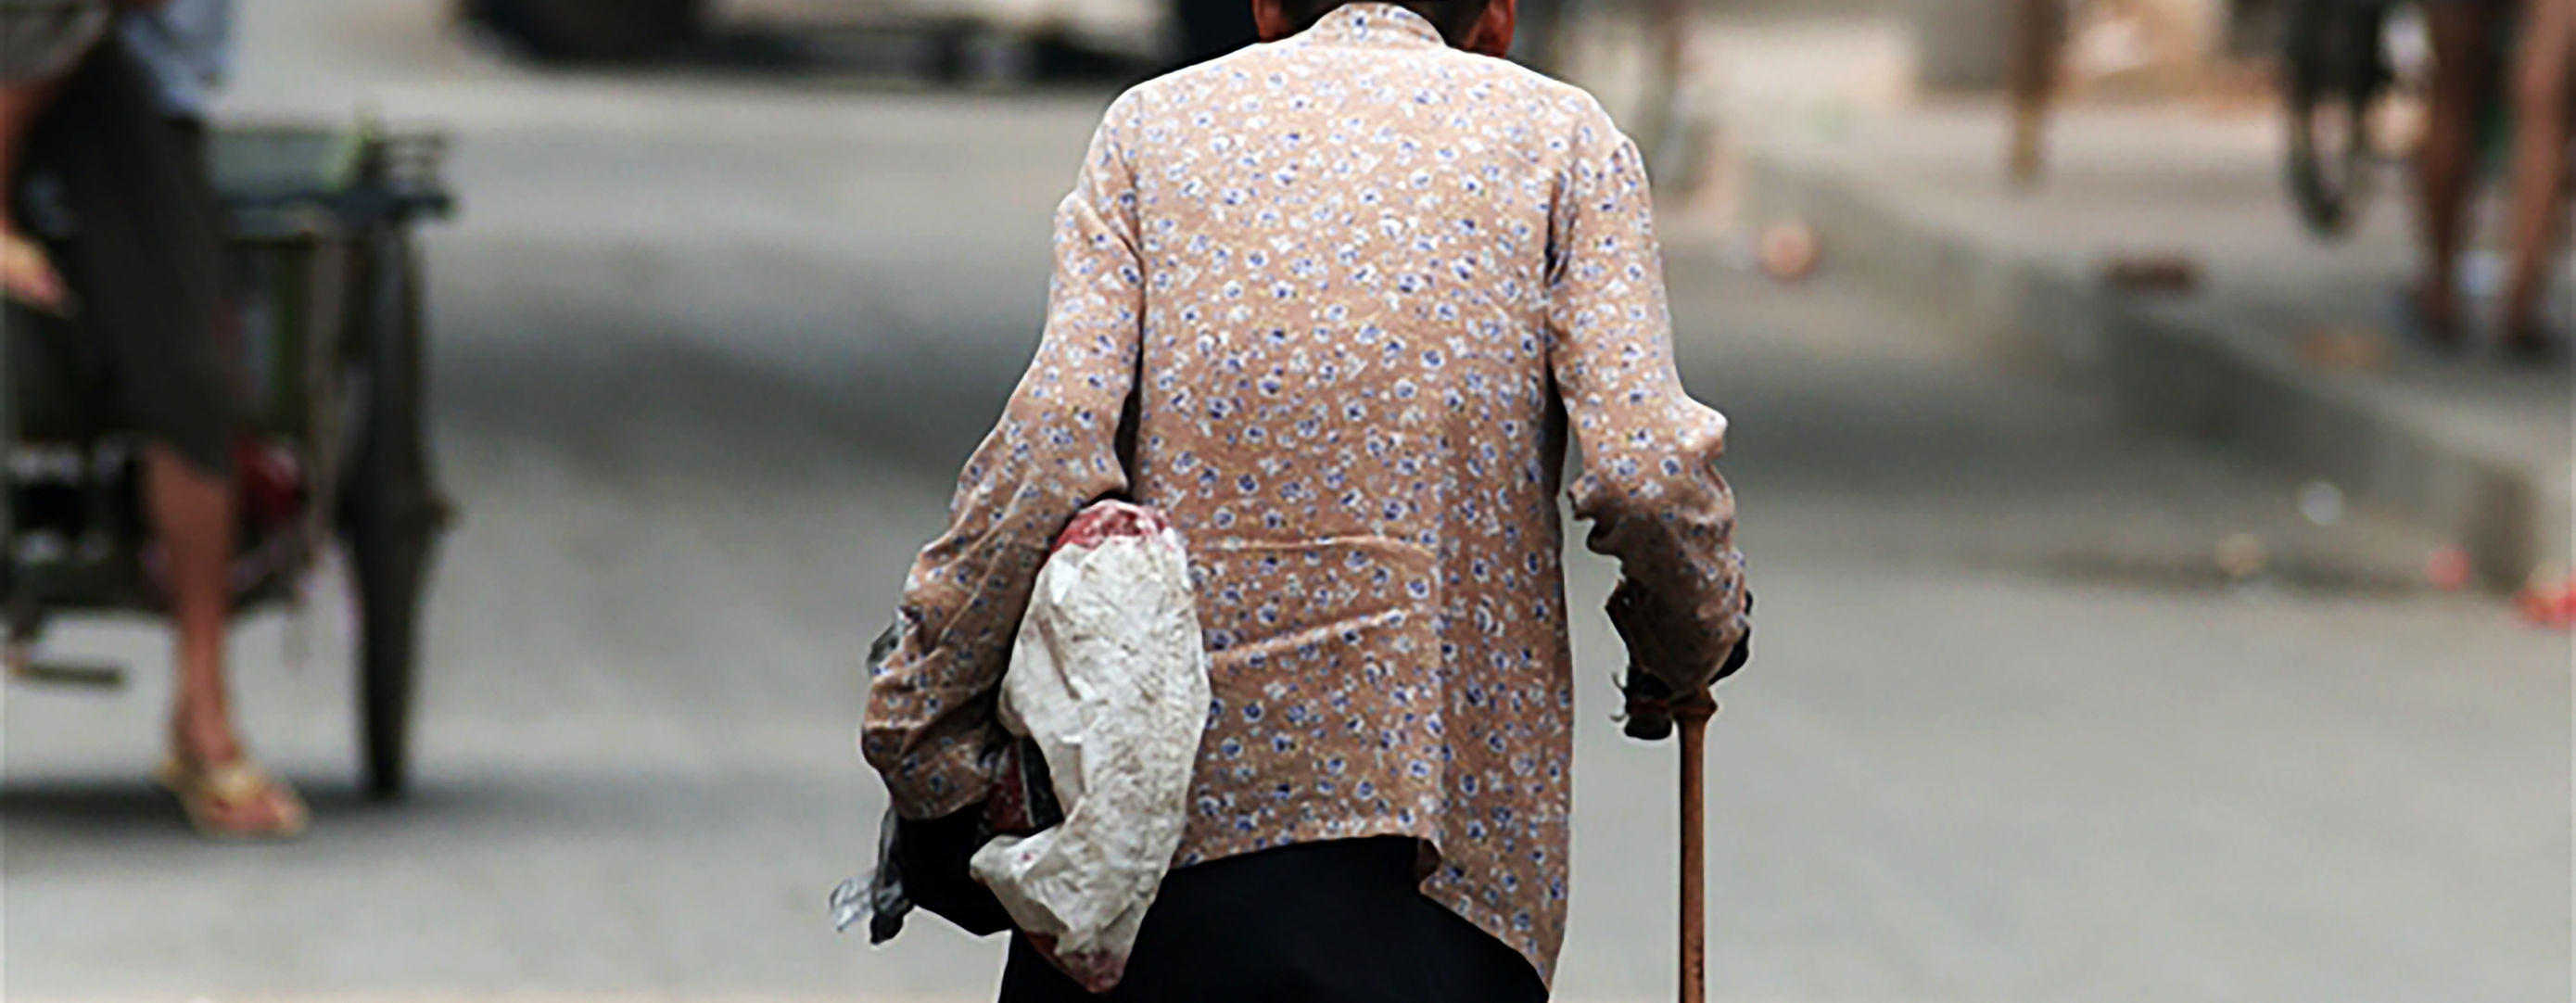 Older lady walking along street with cane